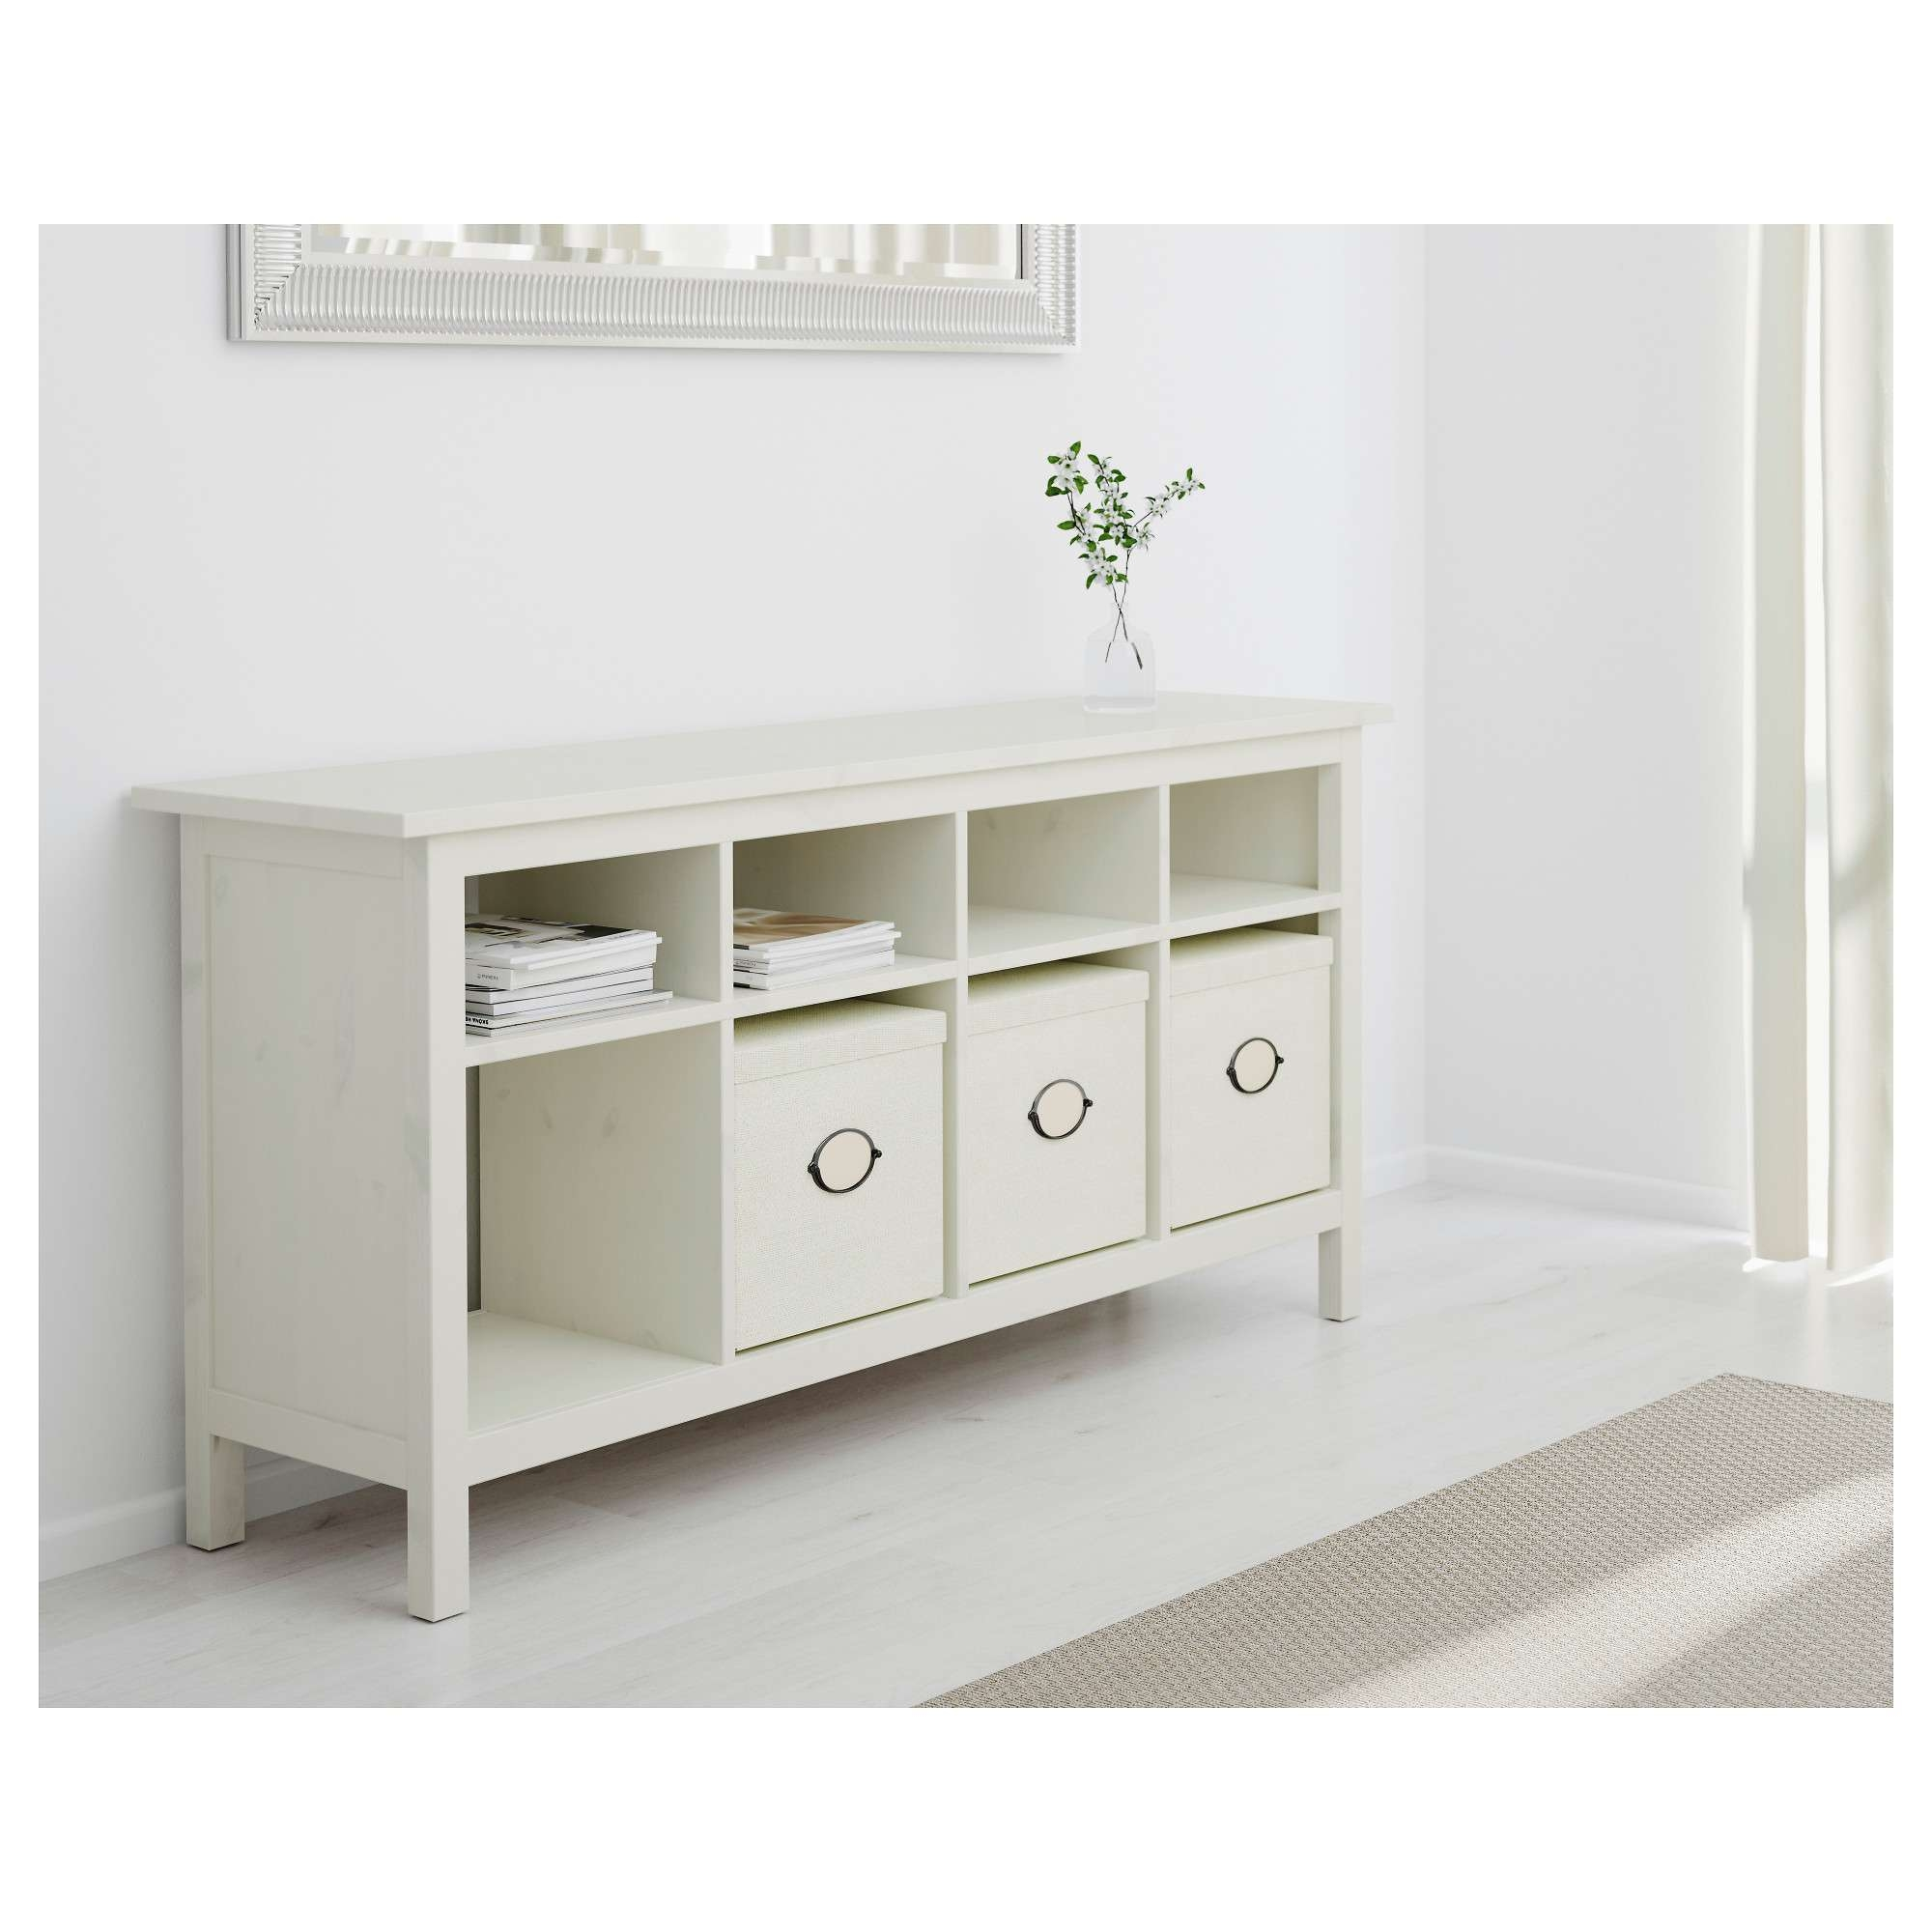 Hemnes Console Table White Stain 157X40 Cm – Ikea For Sideboards And Tables (View 9 of 20)